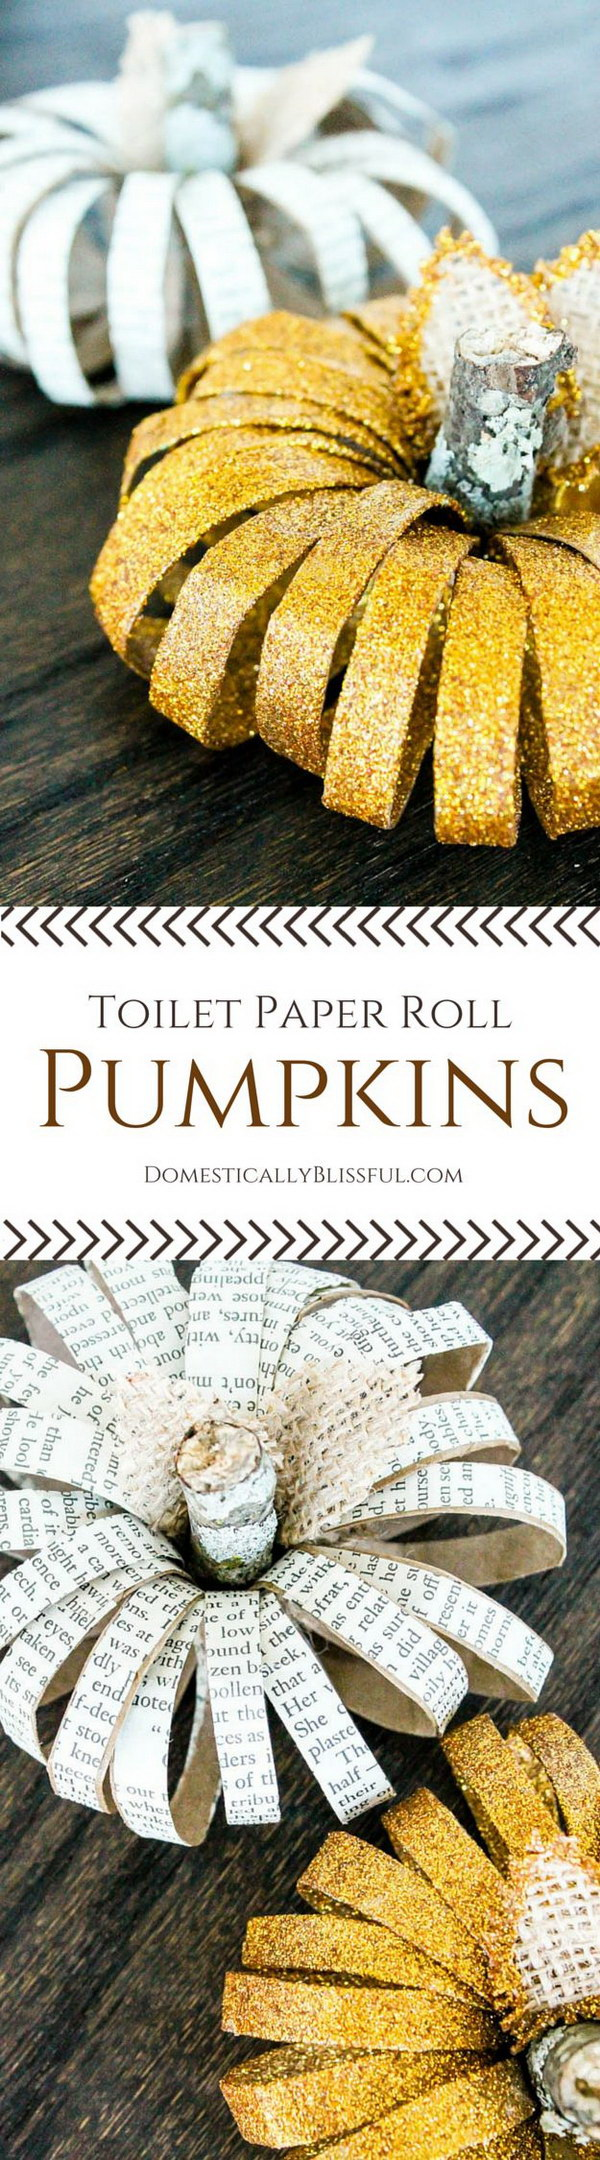 1 DIY Toilet Paper Roll Pumpkins